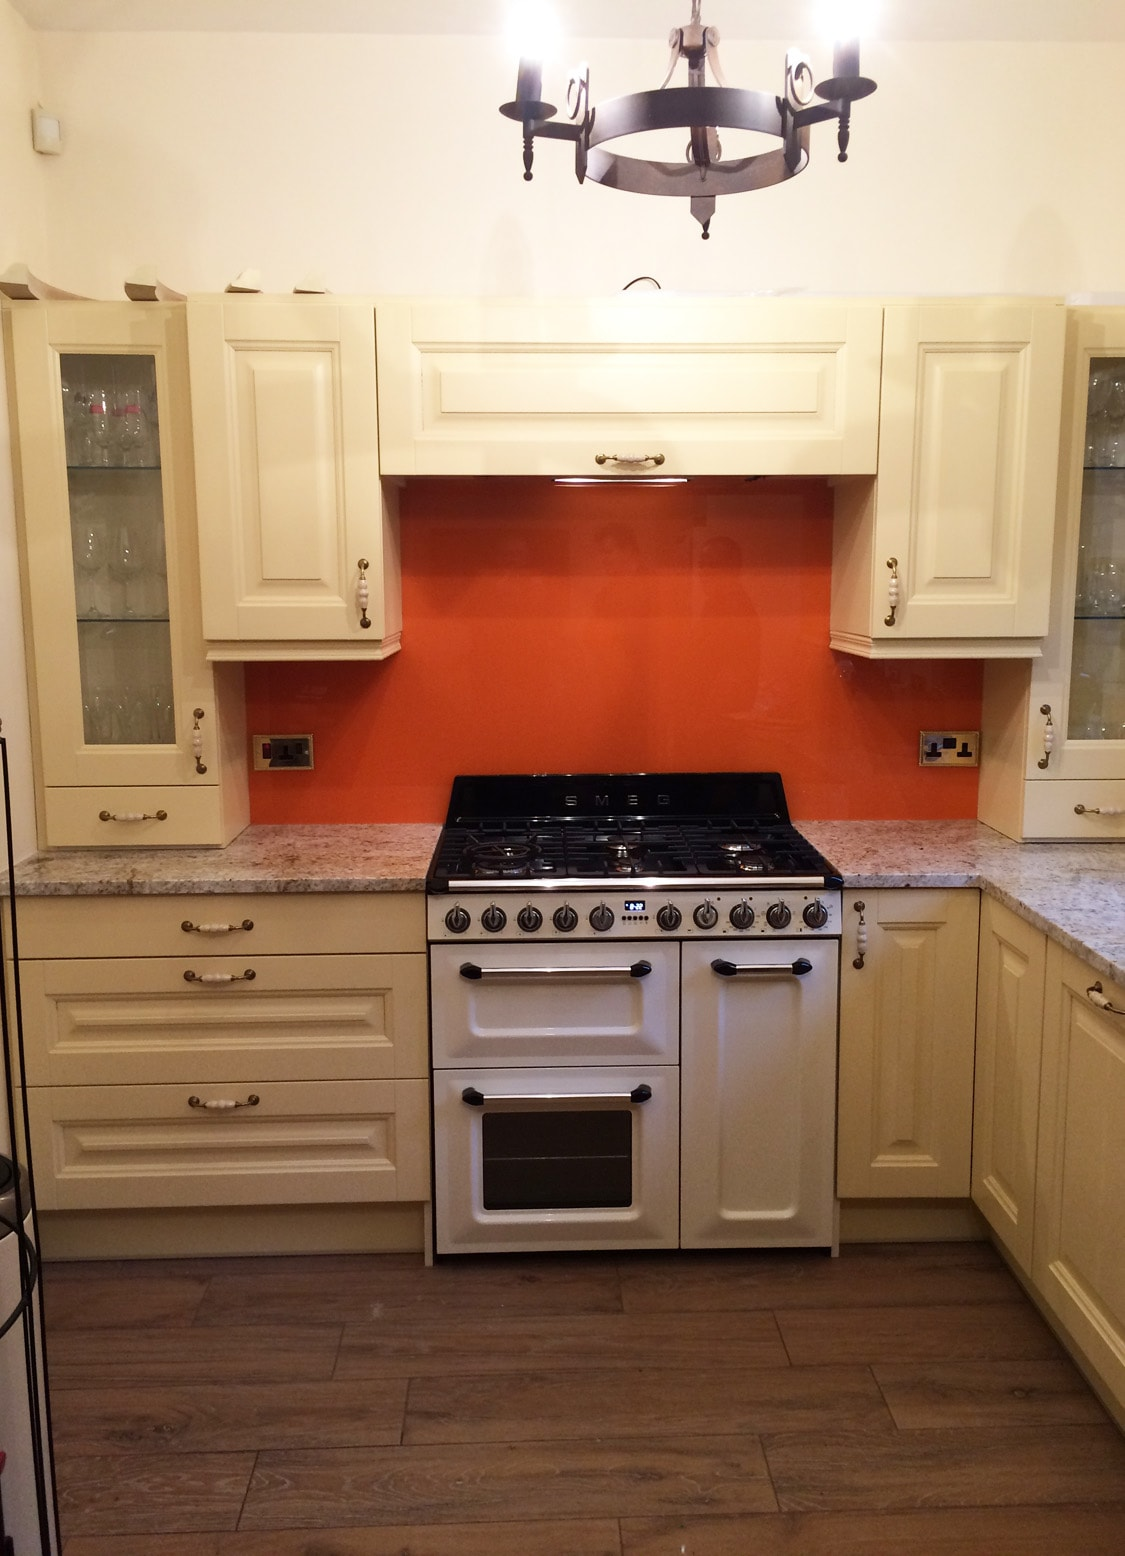 Top Hat Glass Splashback Behind Smeg Cooker Coloured in Valspar Outre Orange